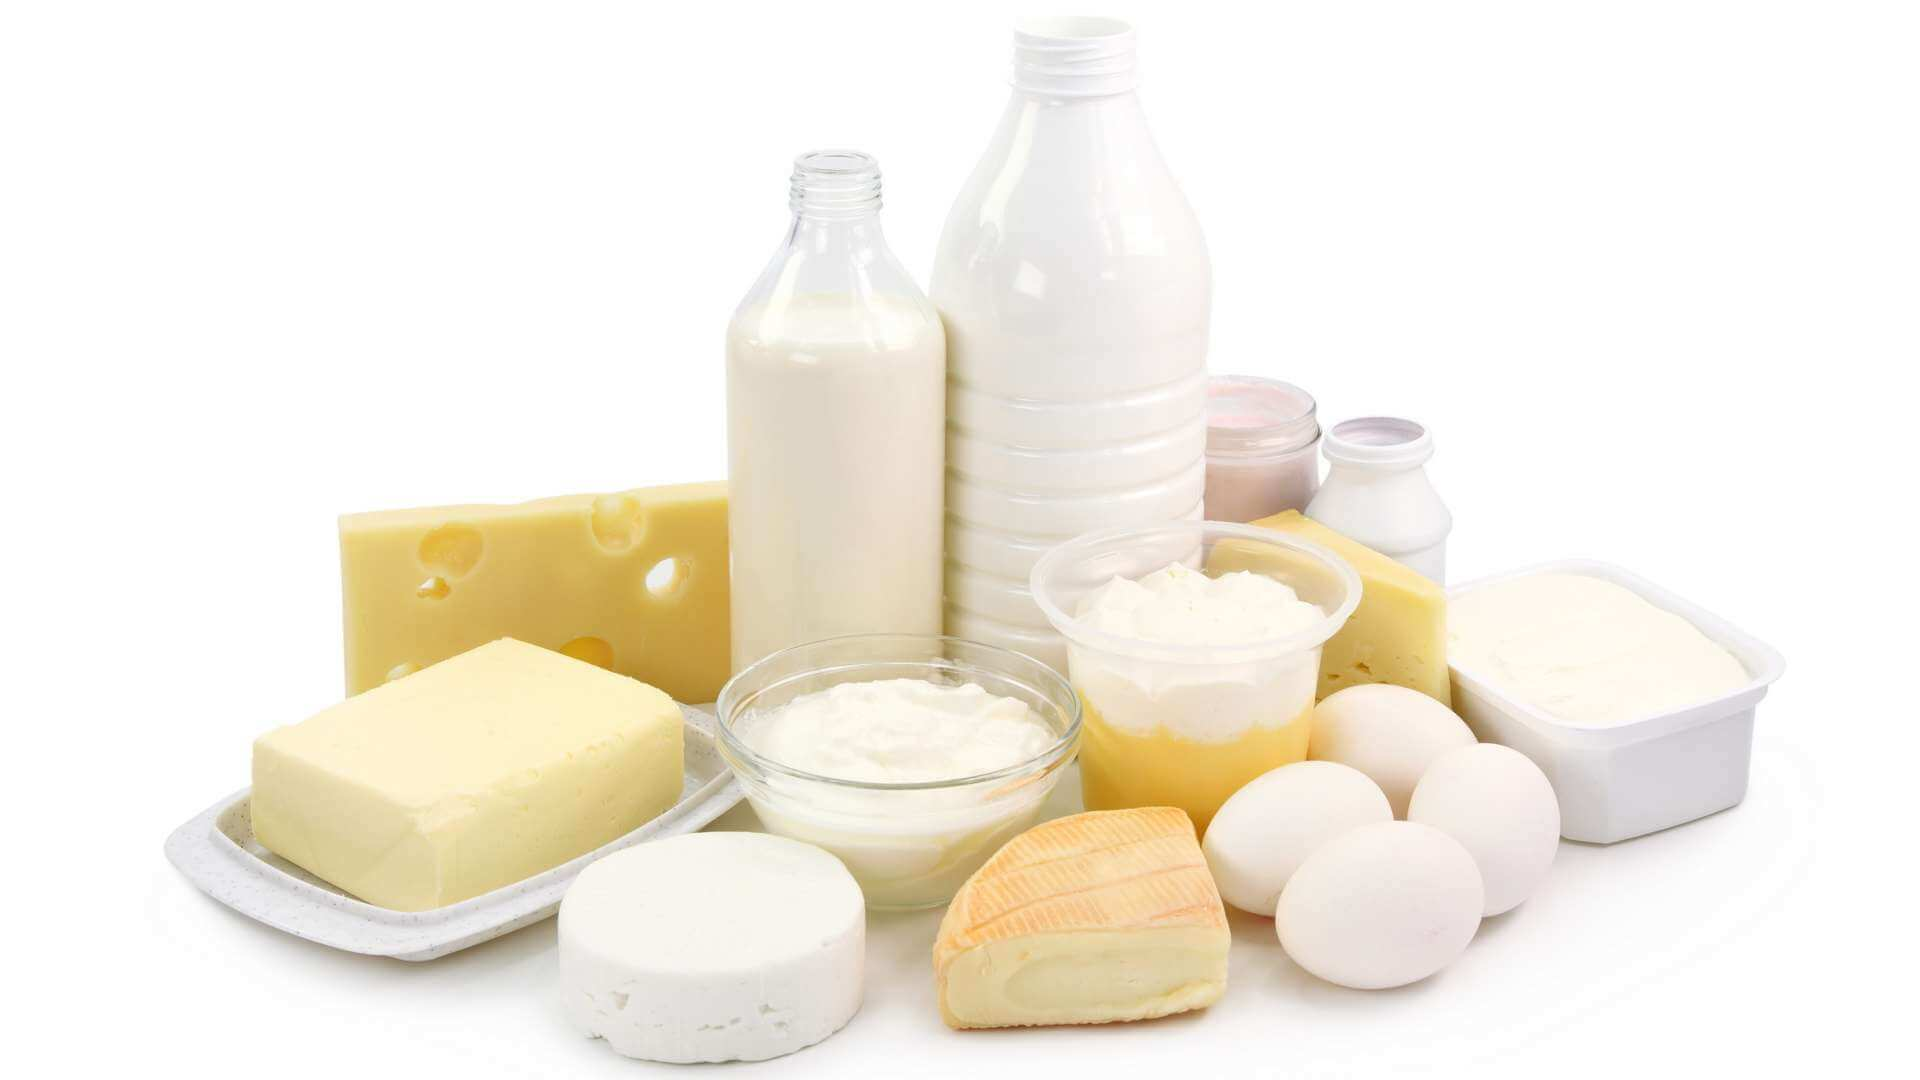 Dairy products, cheeses, eggs